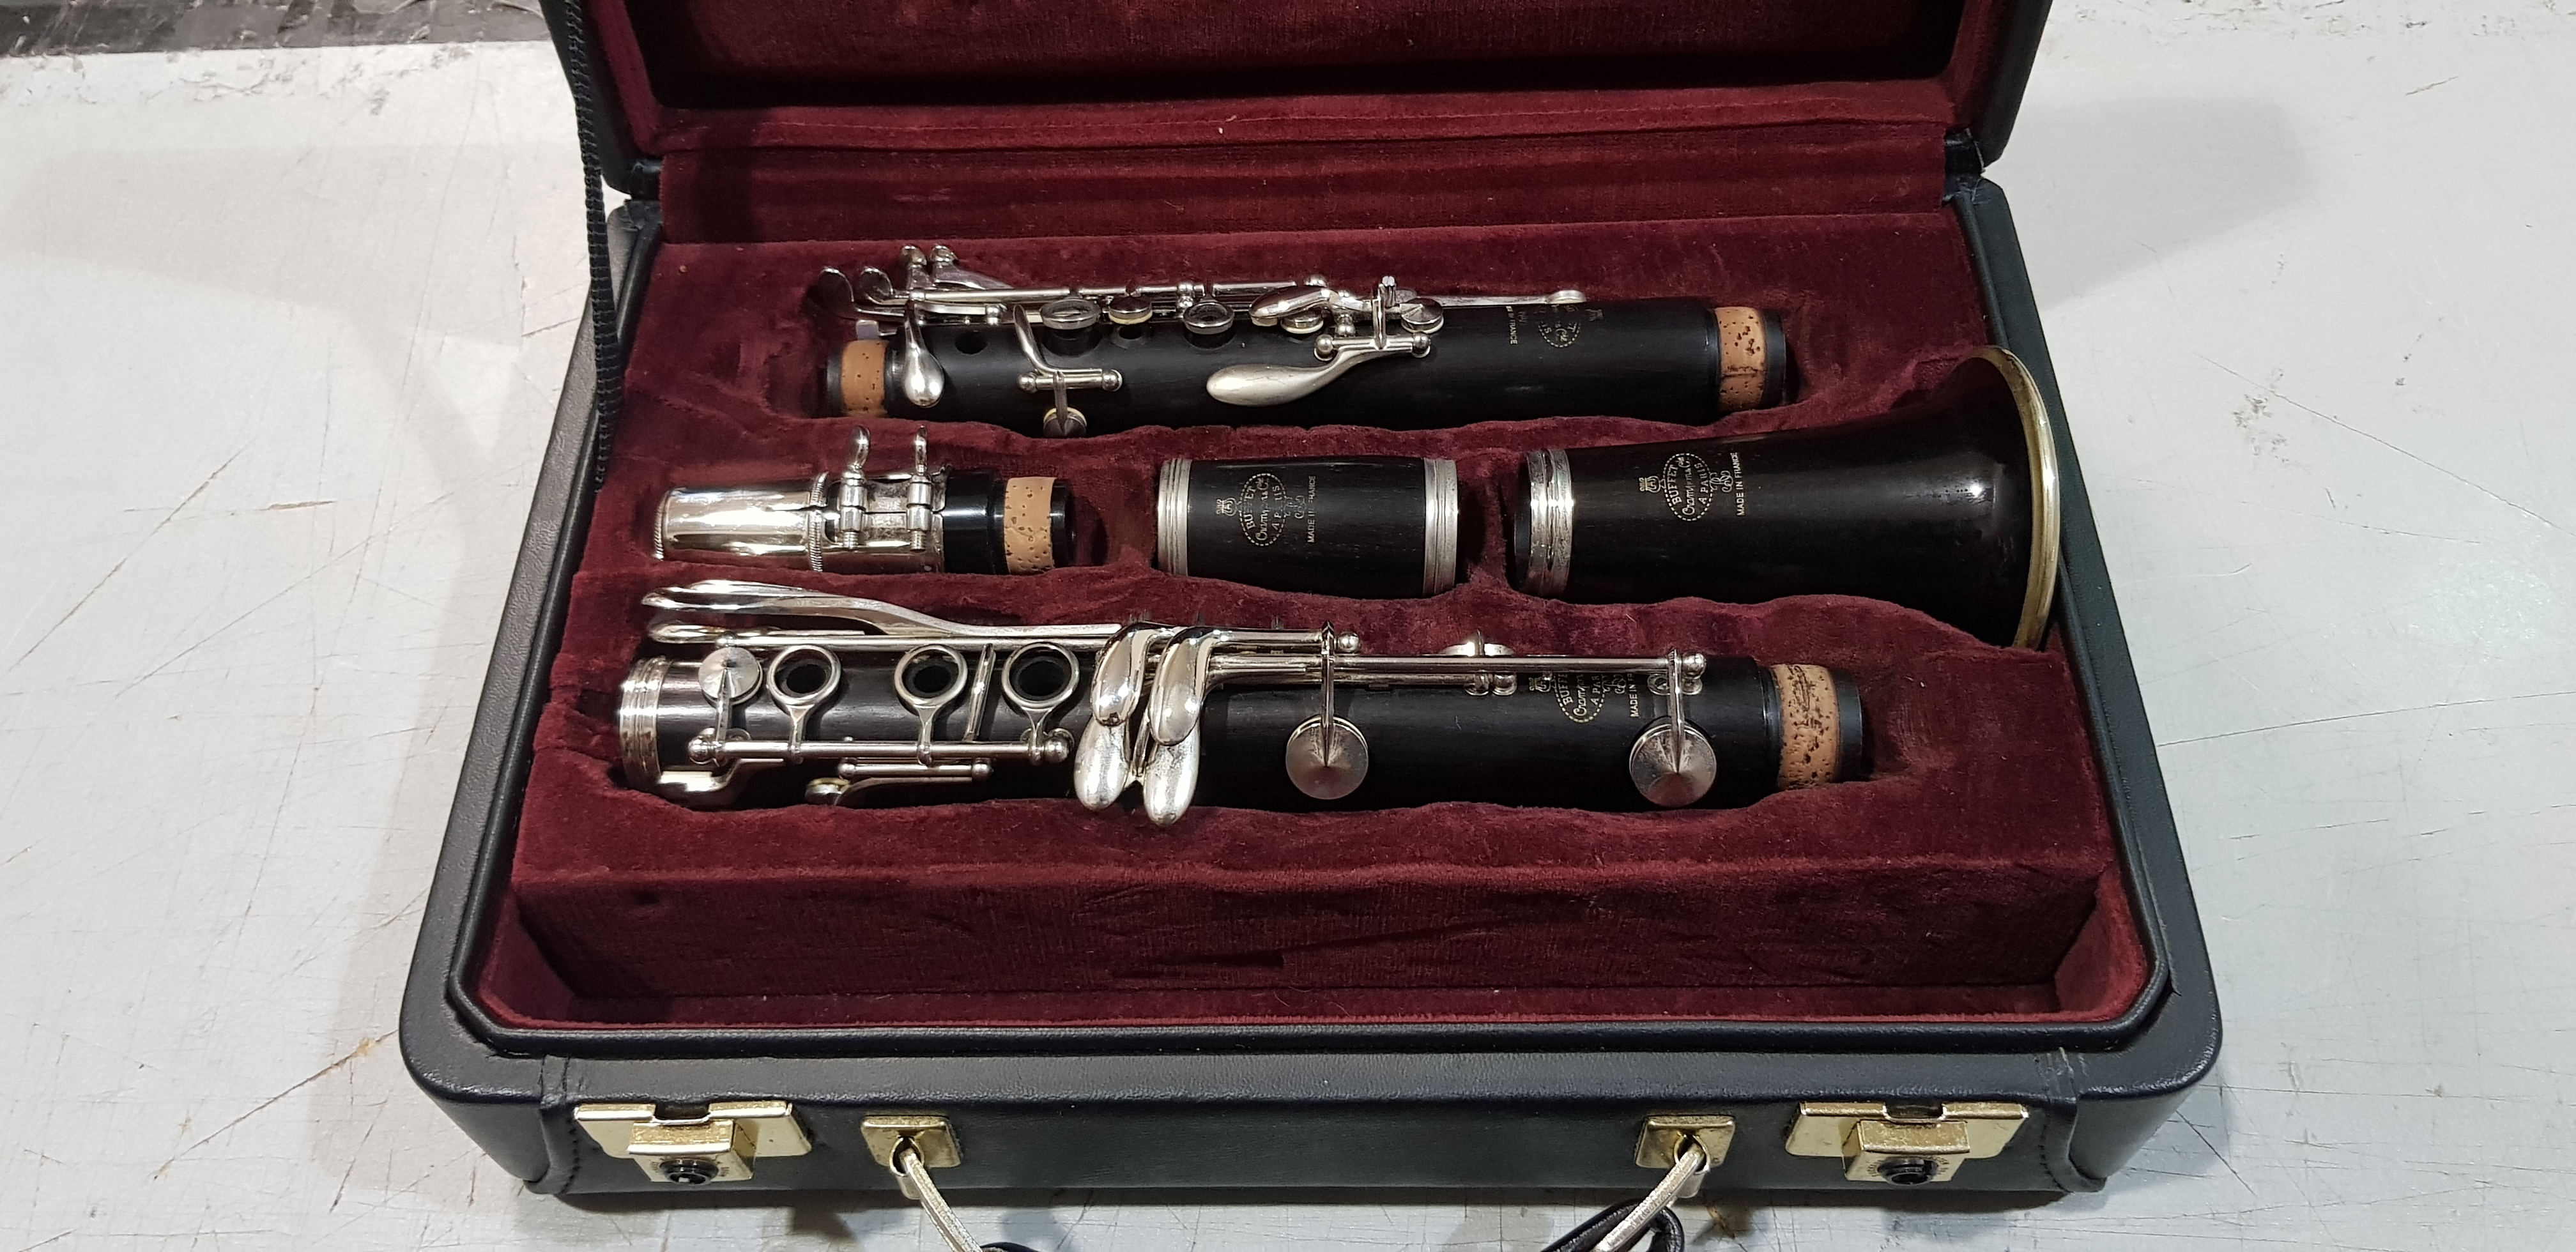 BUFFET CRAMPON R13 B 660 Professional Wood Bb Clarinet with Case